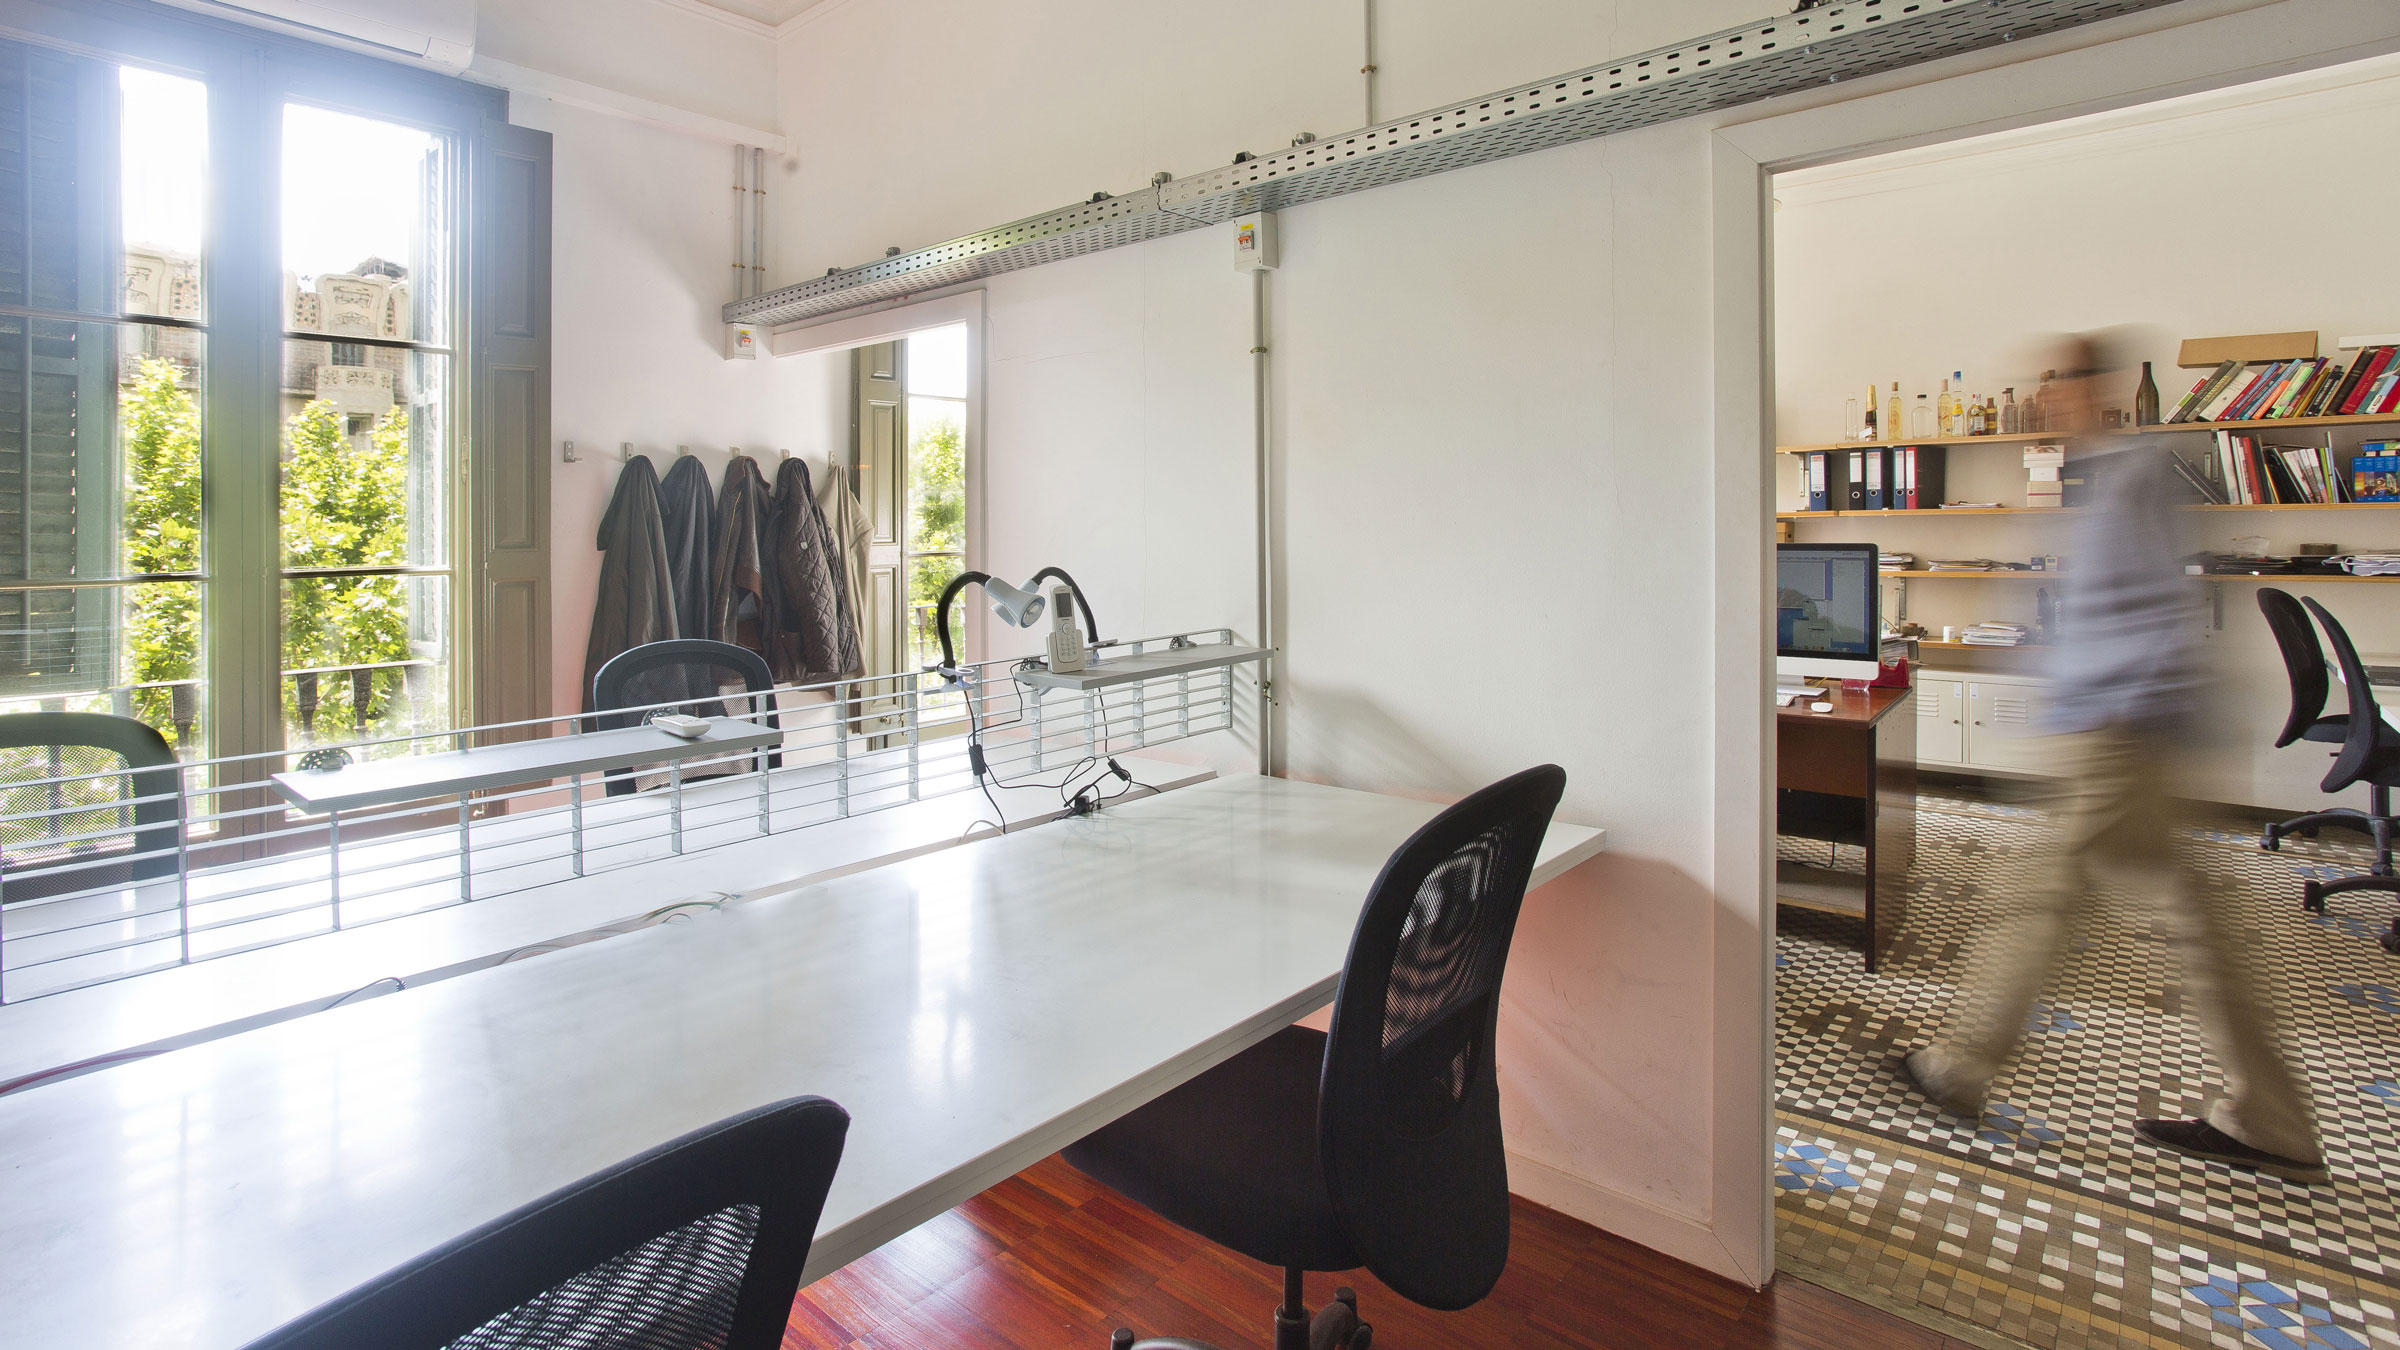 SPACE-1-bcn-575-coworking-2